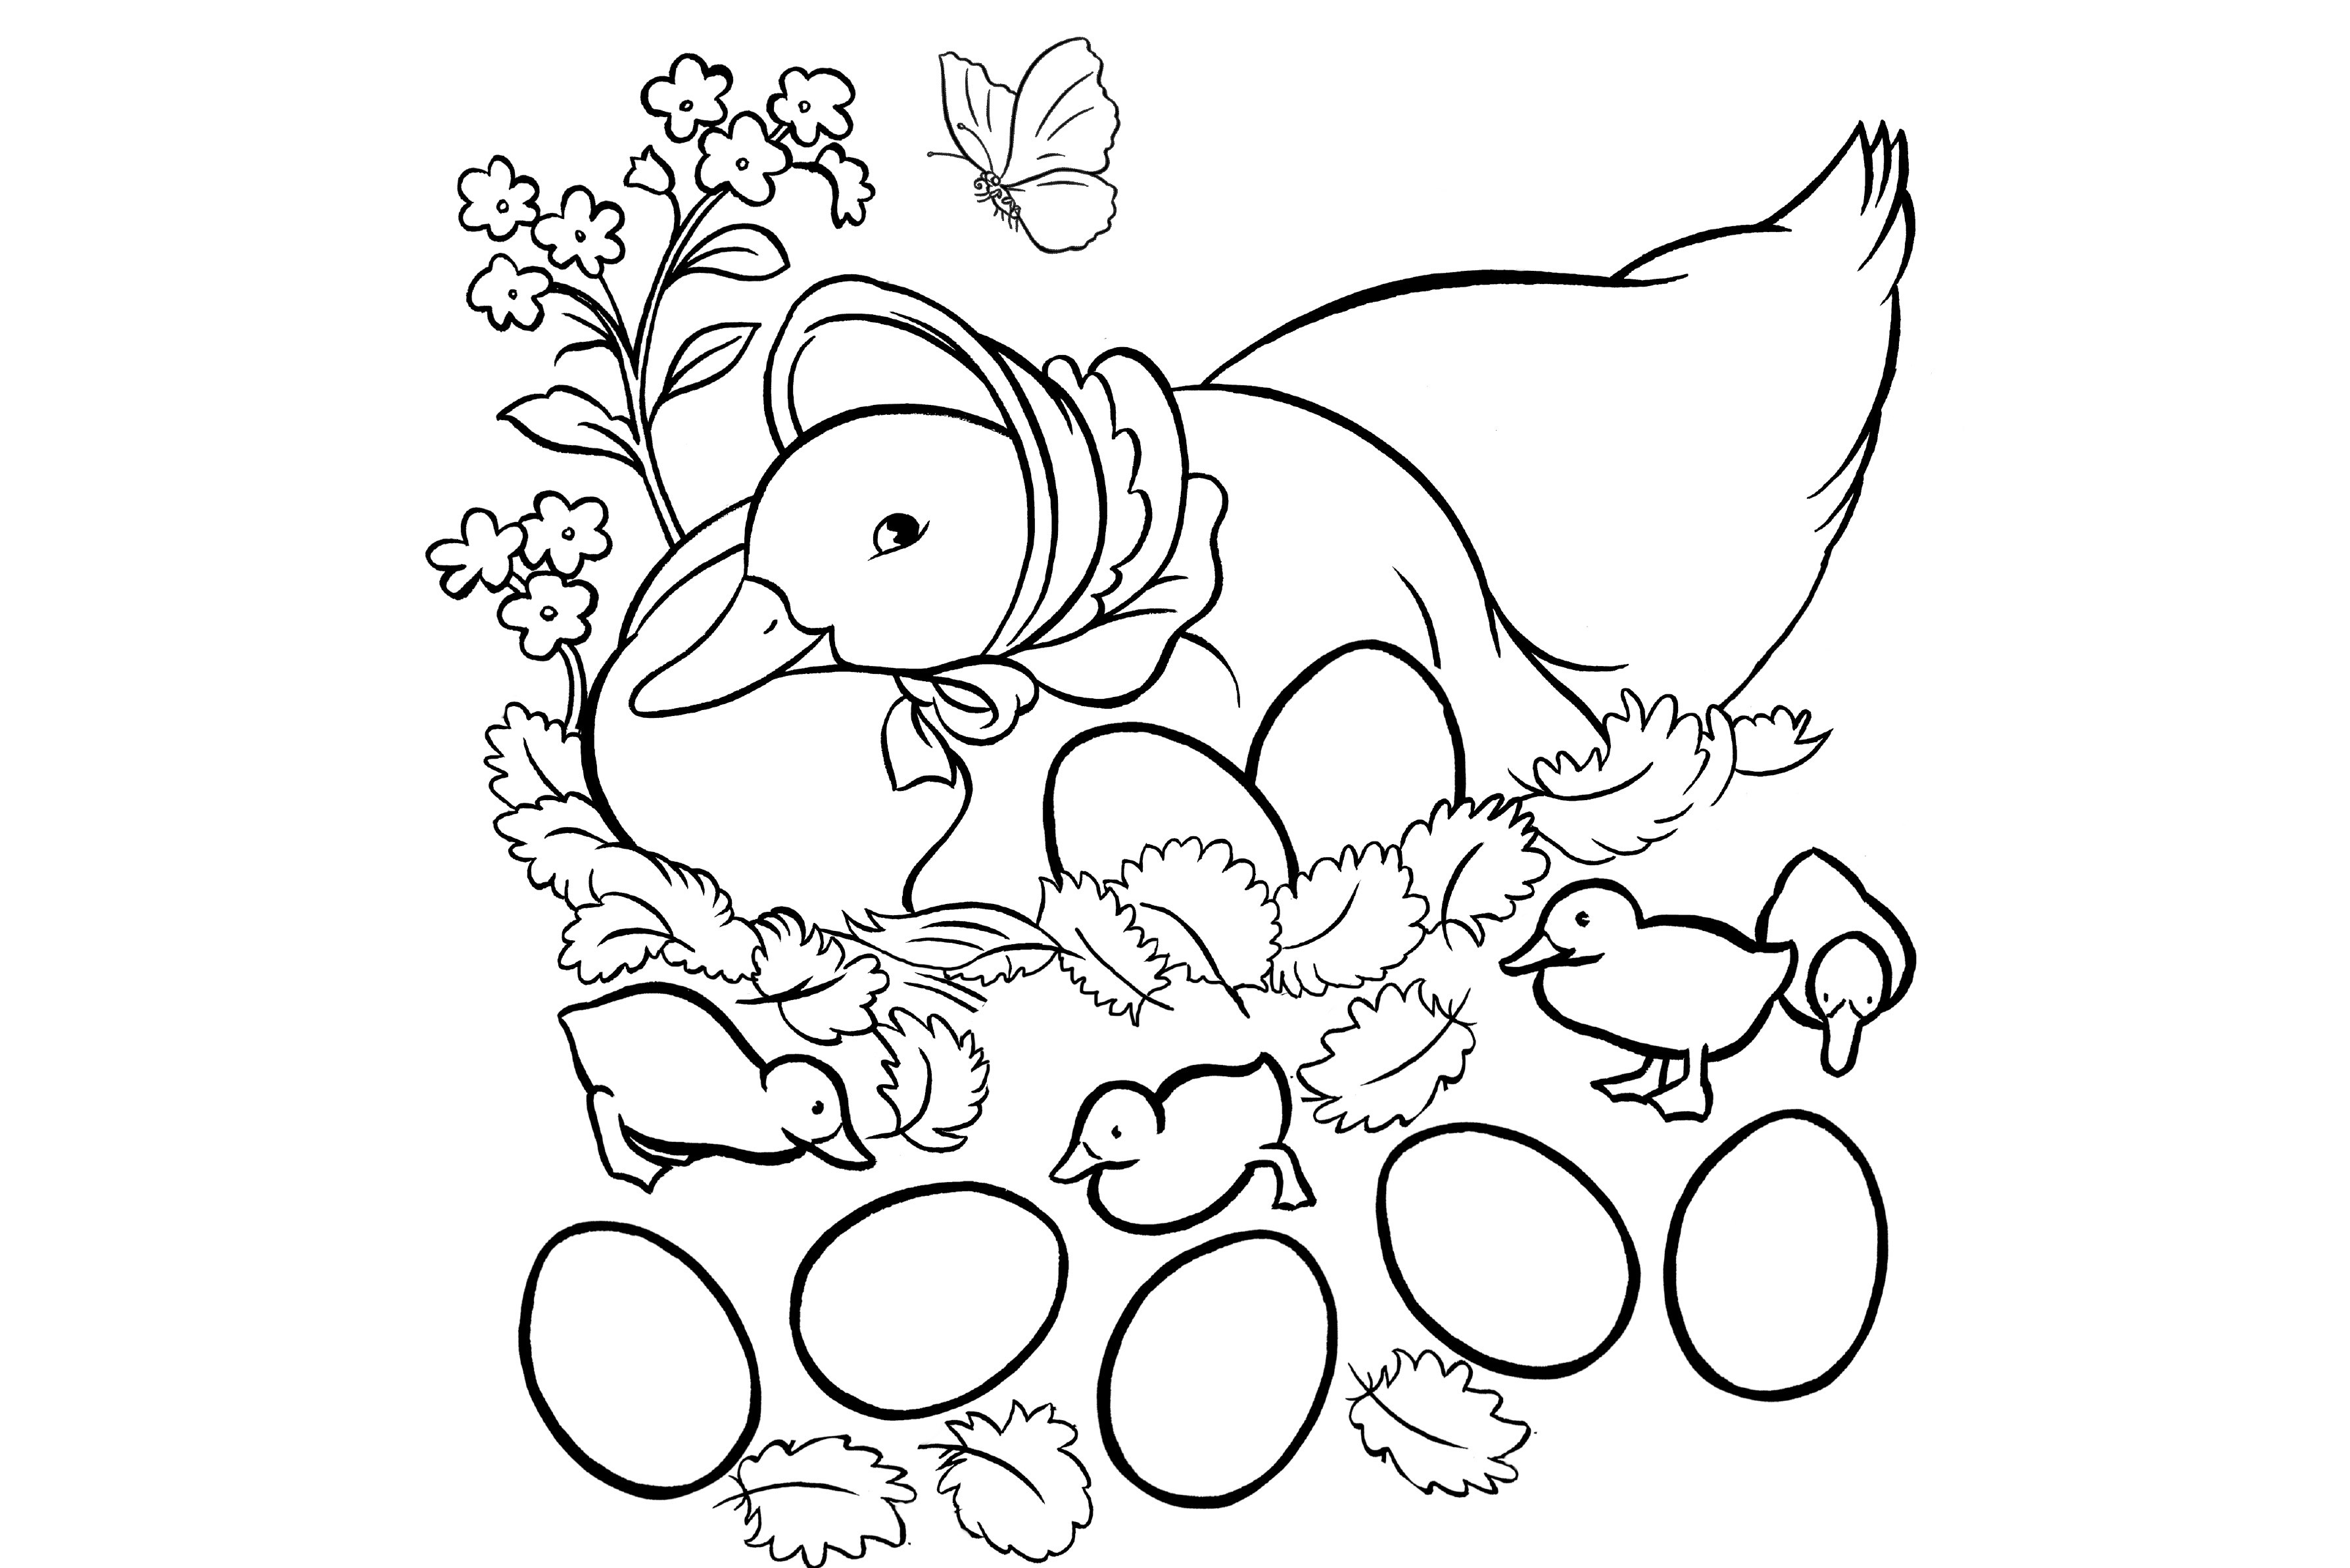 Peter Rabbit And Jemima Puddle Duck Activity Printables